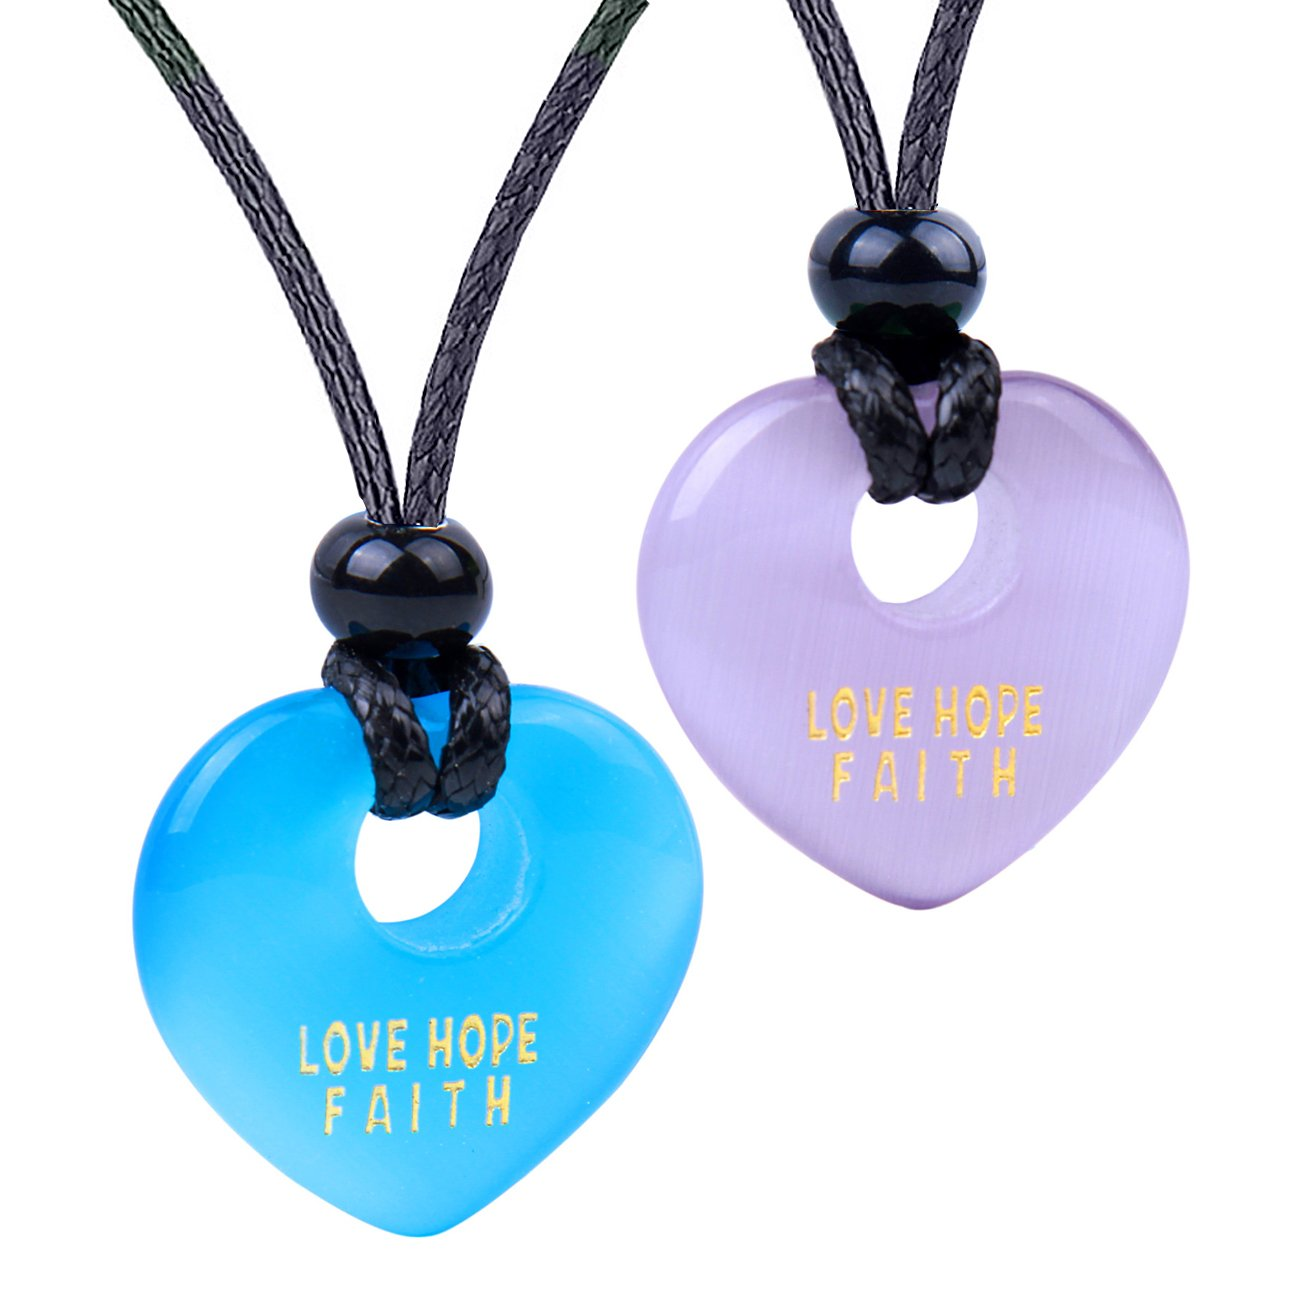 Inspirational Heart Donut Amulet Love Hope Faith Power Couple BFF Purple Blue Simulated Cat Eye Necklaces